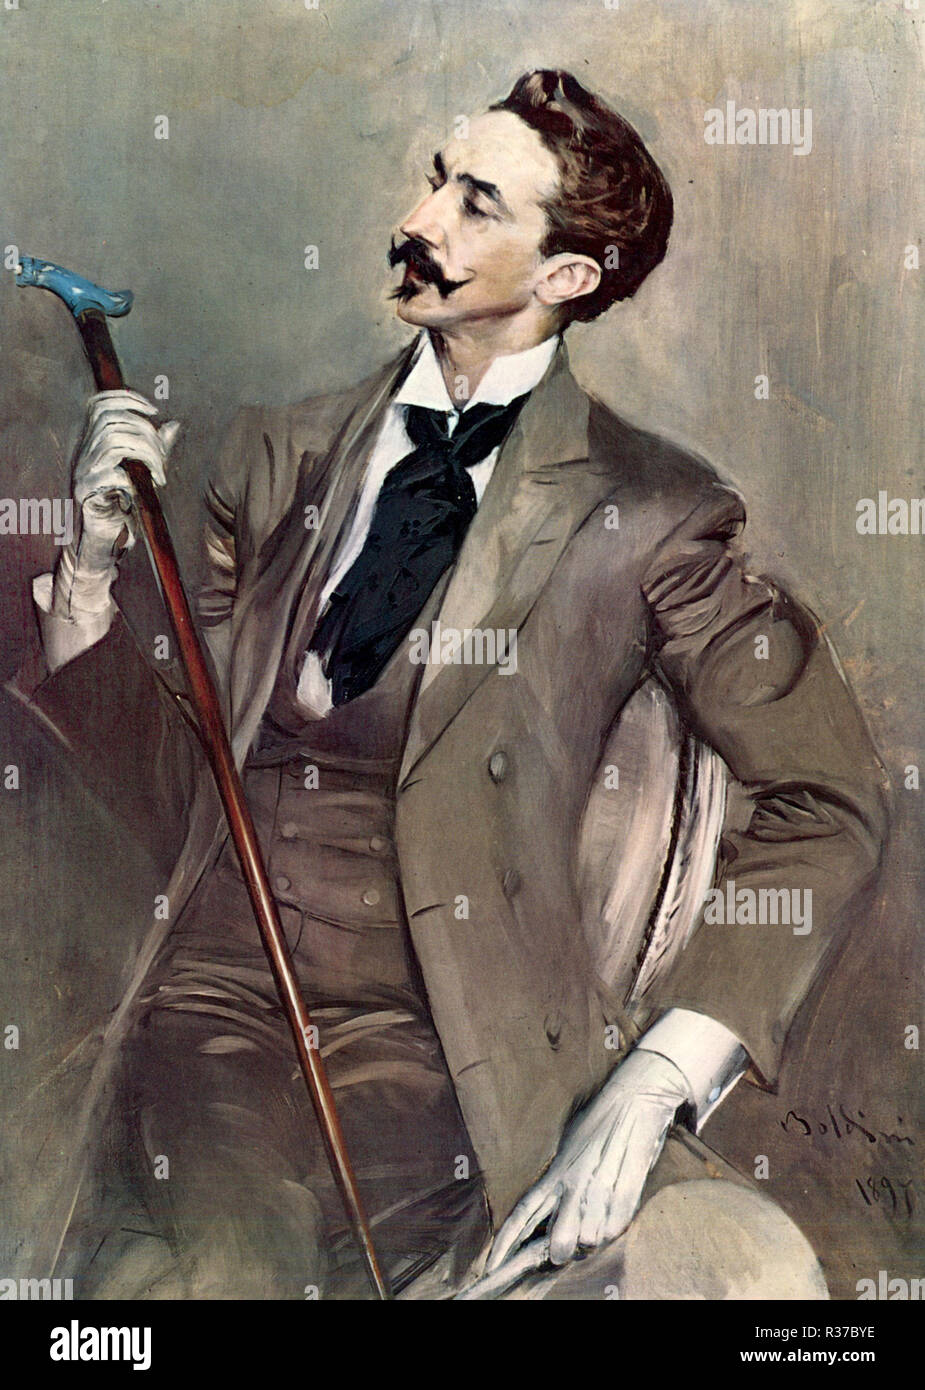 Robert de Montesquiou, Marie Joseph Robert Anatole, Comte de Montesquiou-Fézensac (1855 – 1921), French aesthete, Symbolist poet, art collector and dandy - Stock Image